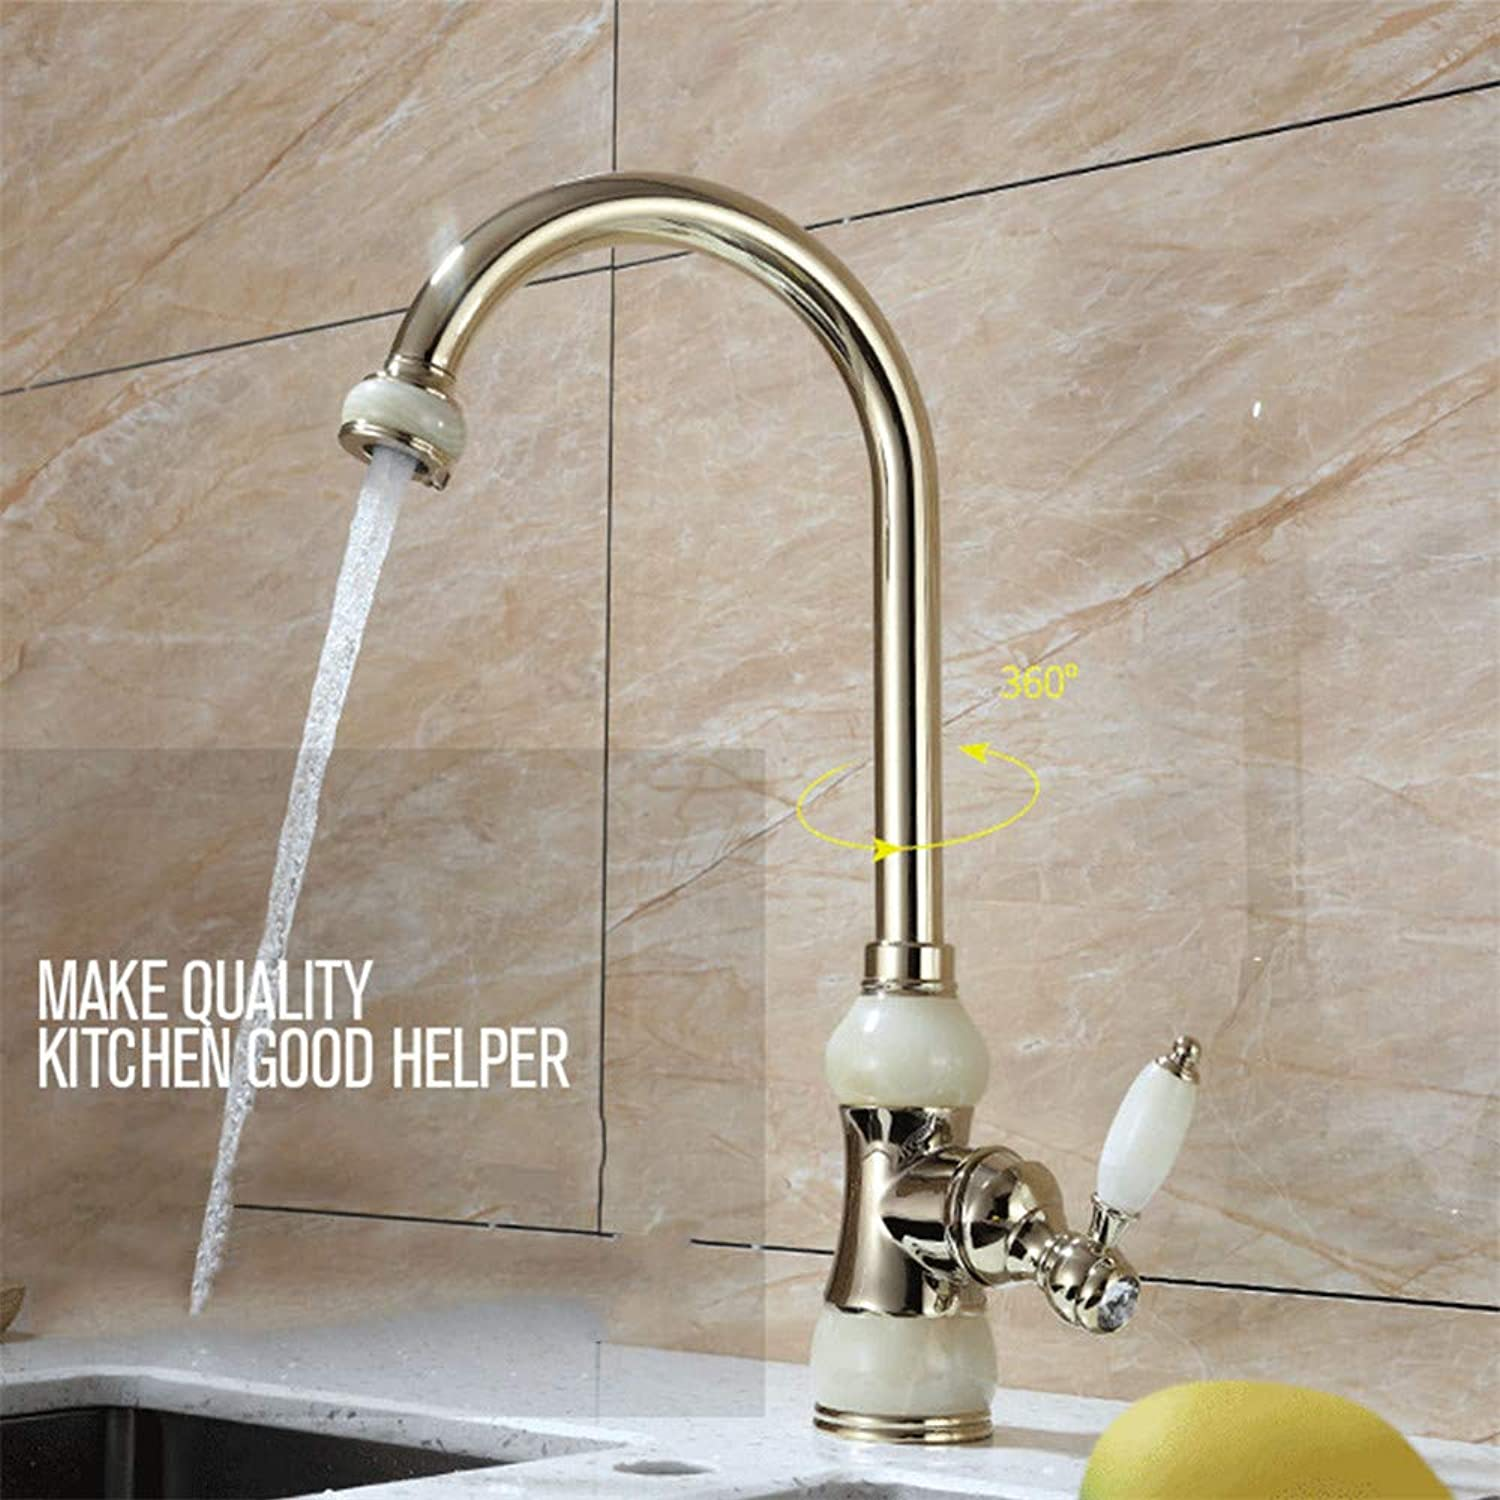 HHWY Kitchen sink faucet, single-connected marble sink bubbler faucet European single handle greenical 360° redating hot and cold jade gold-plated faucet